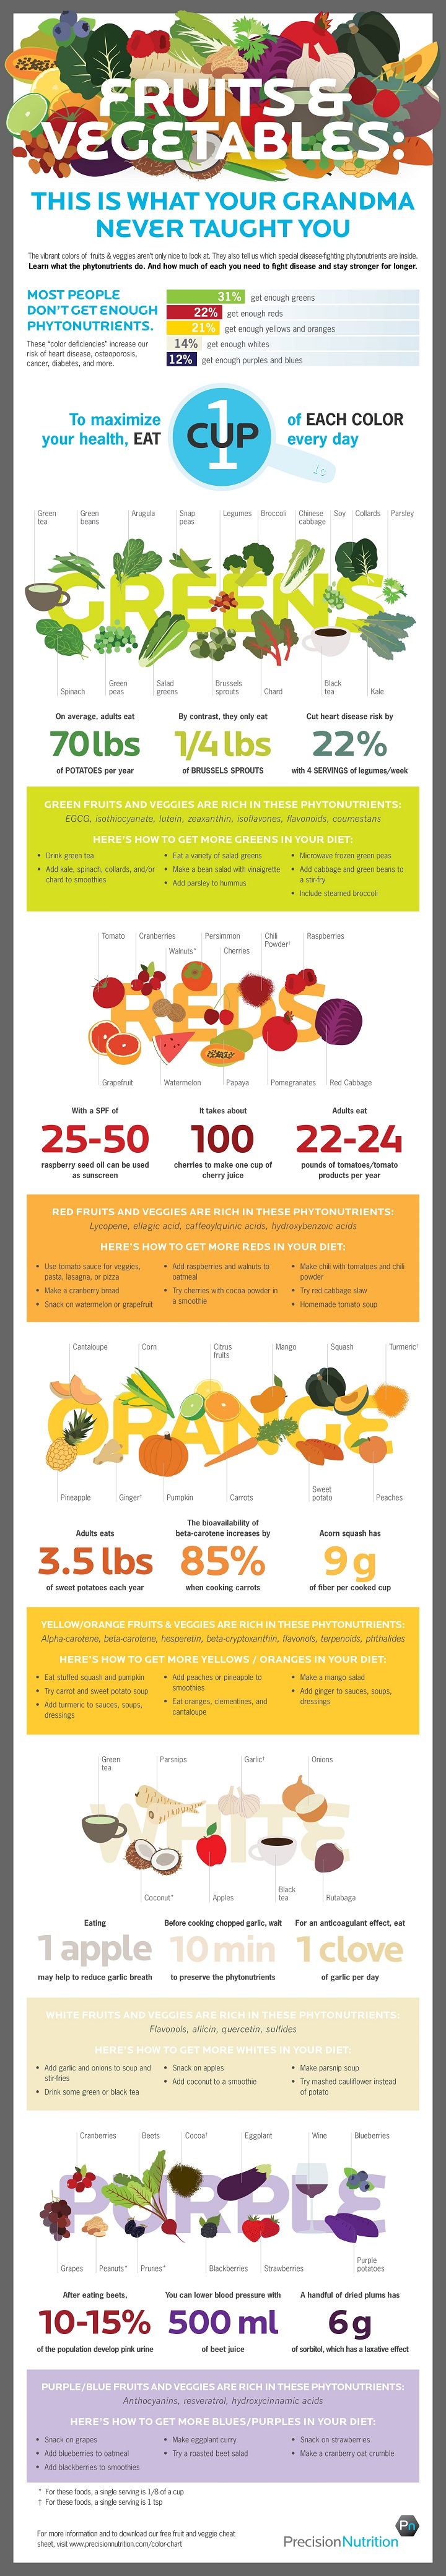 fruits and vegetables infographic